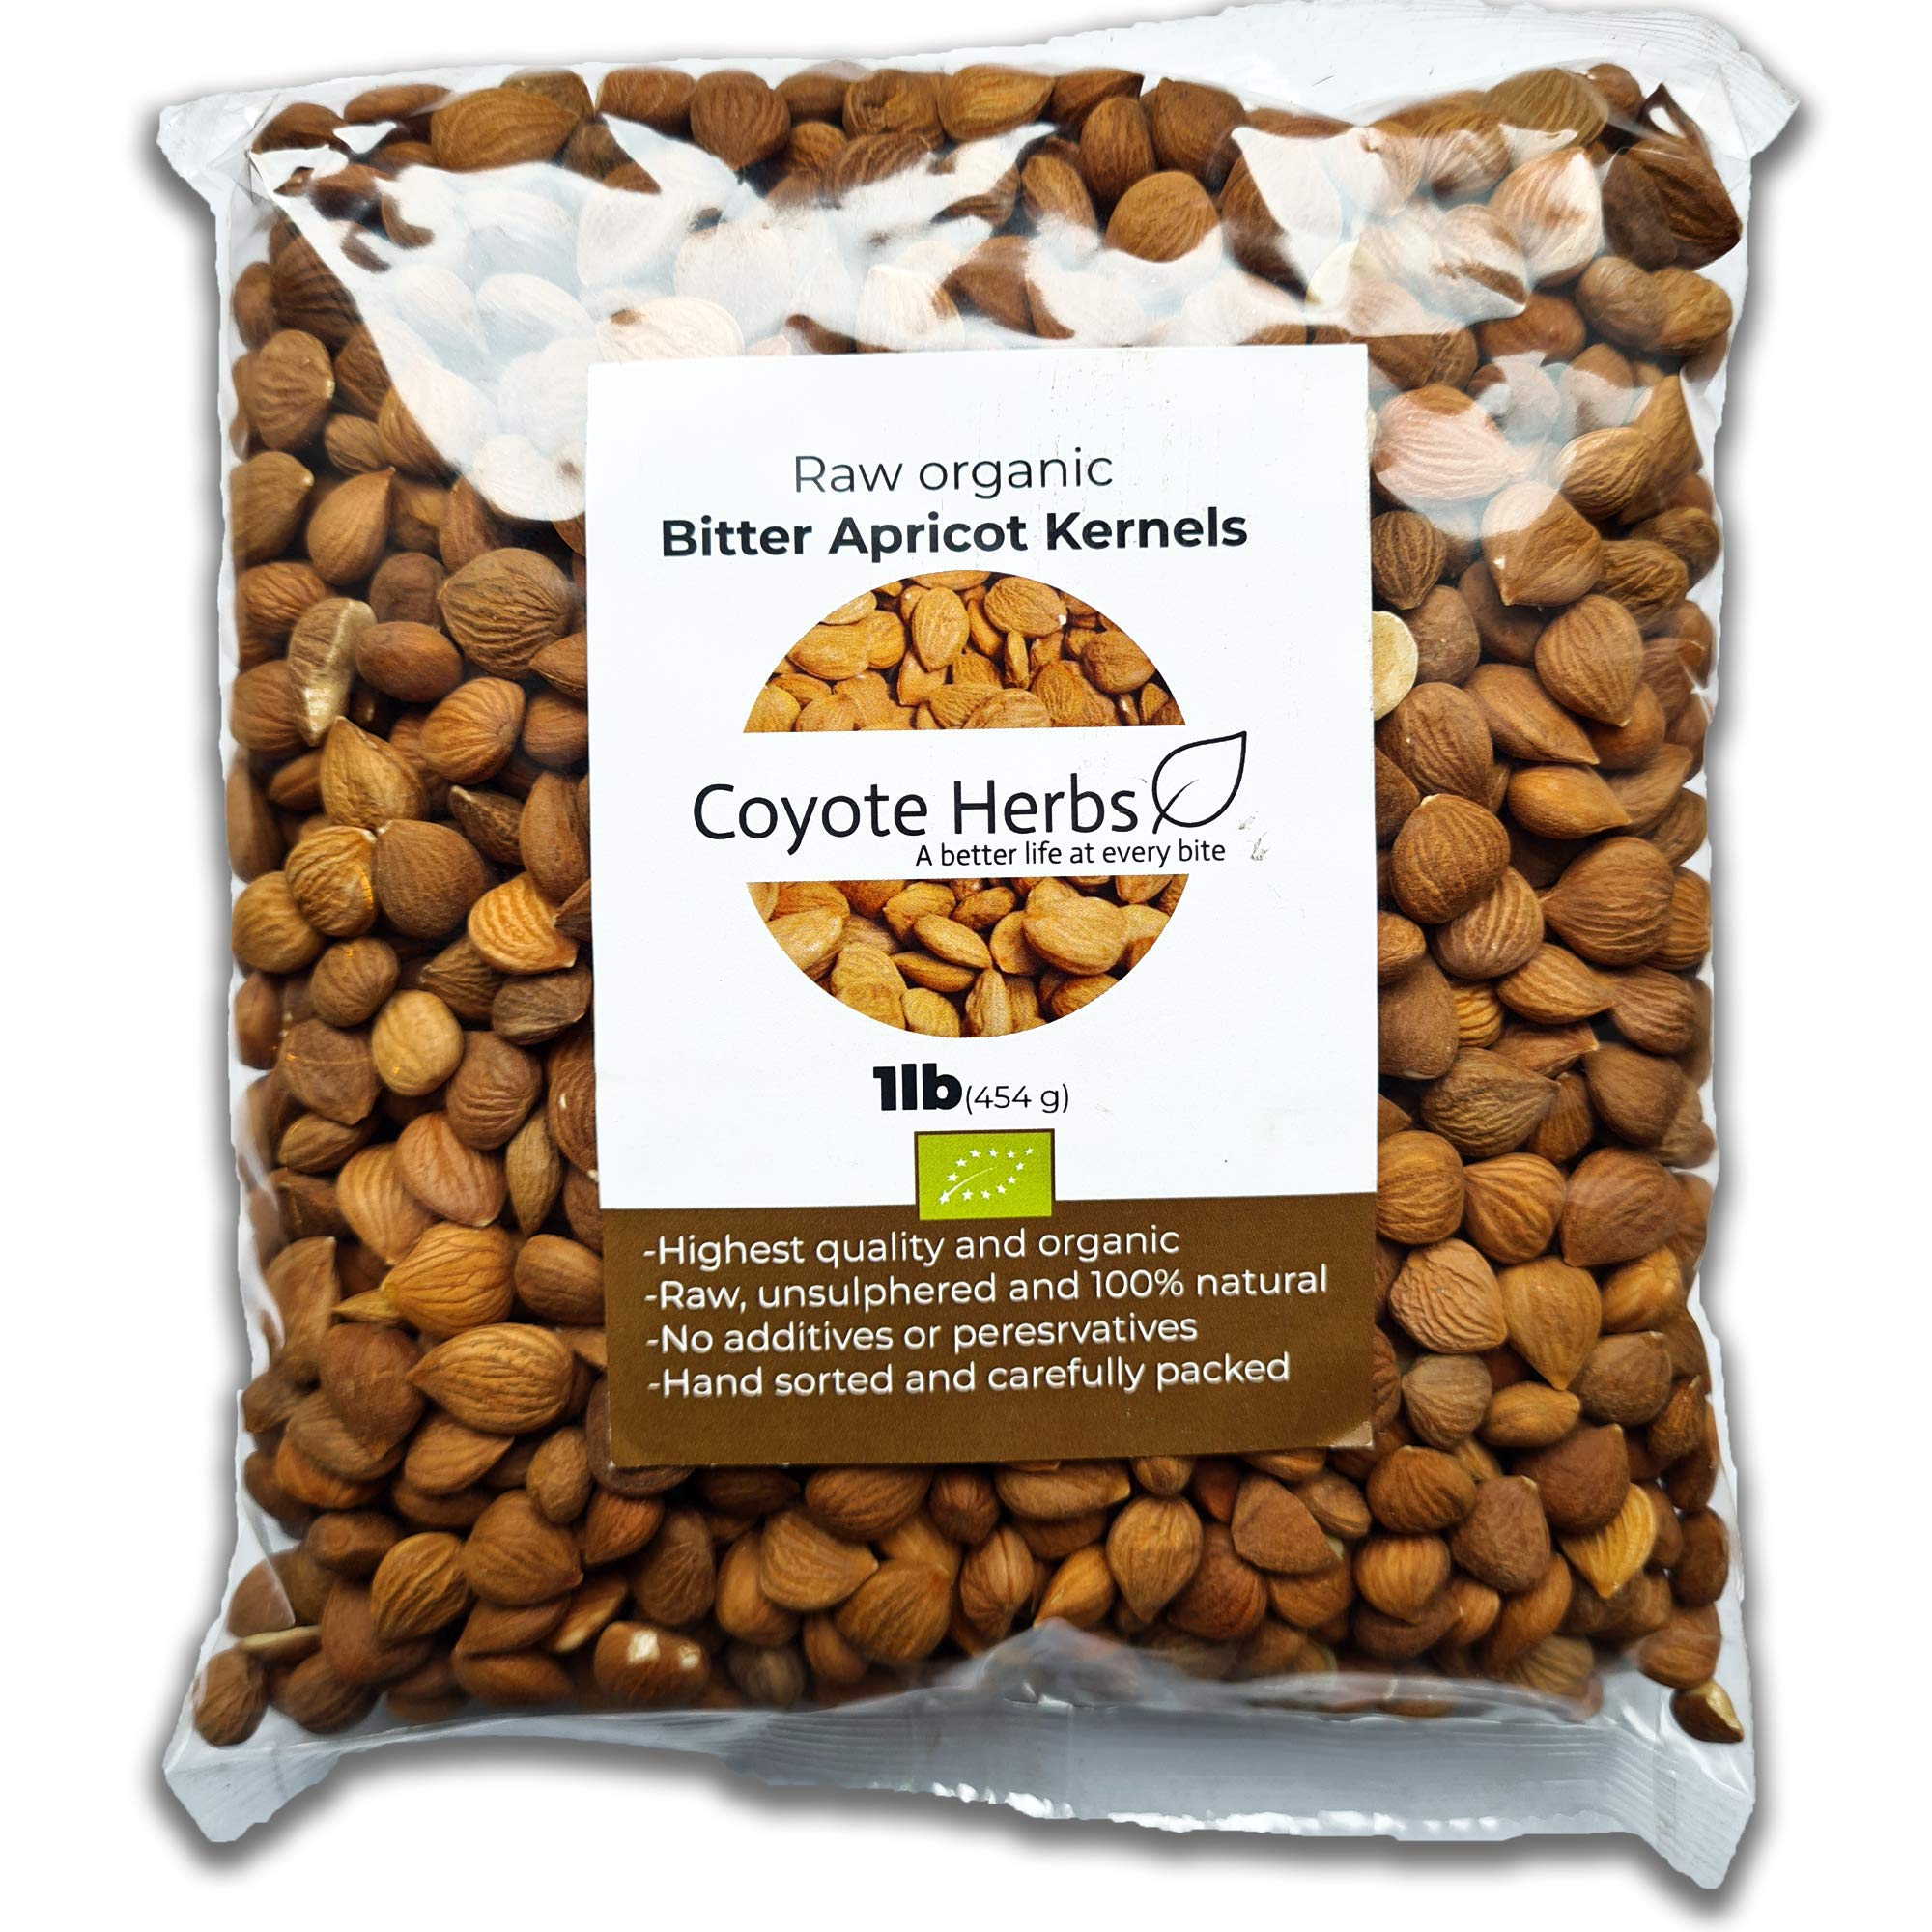 Apricot kernels/ natural/ raw/ bitter apricot kernel seeds/Vitamin b17/Certified/ 1 POUND (16 OZ)